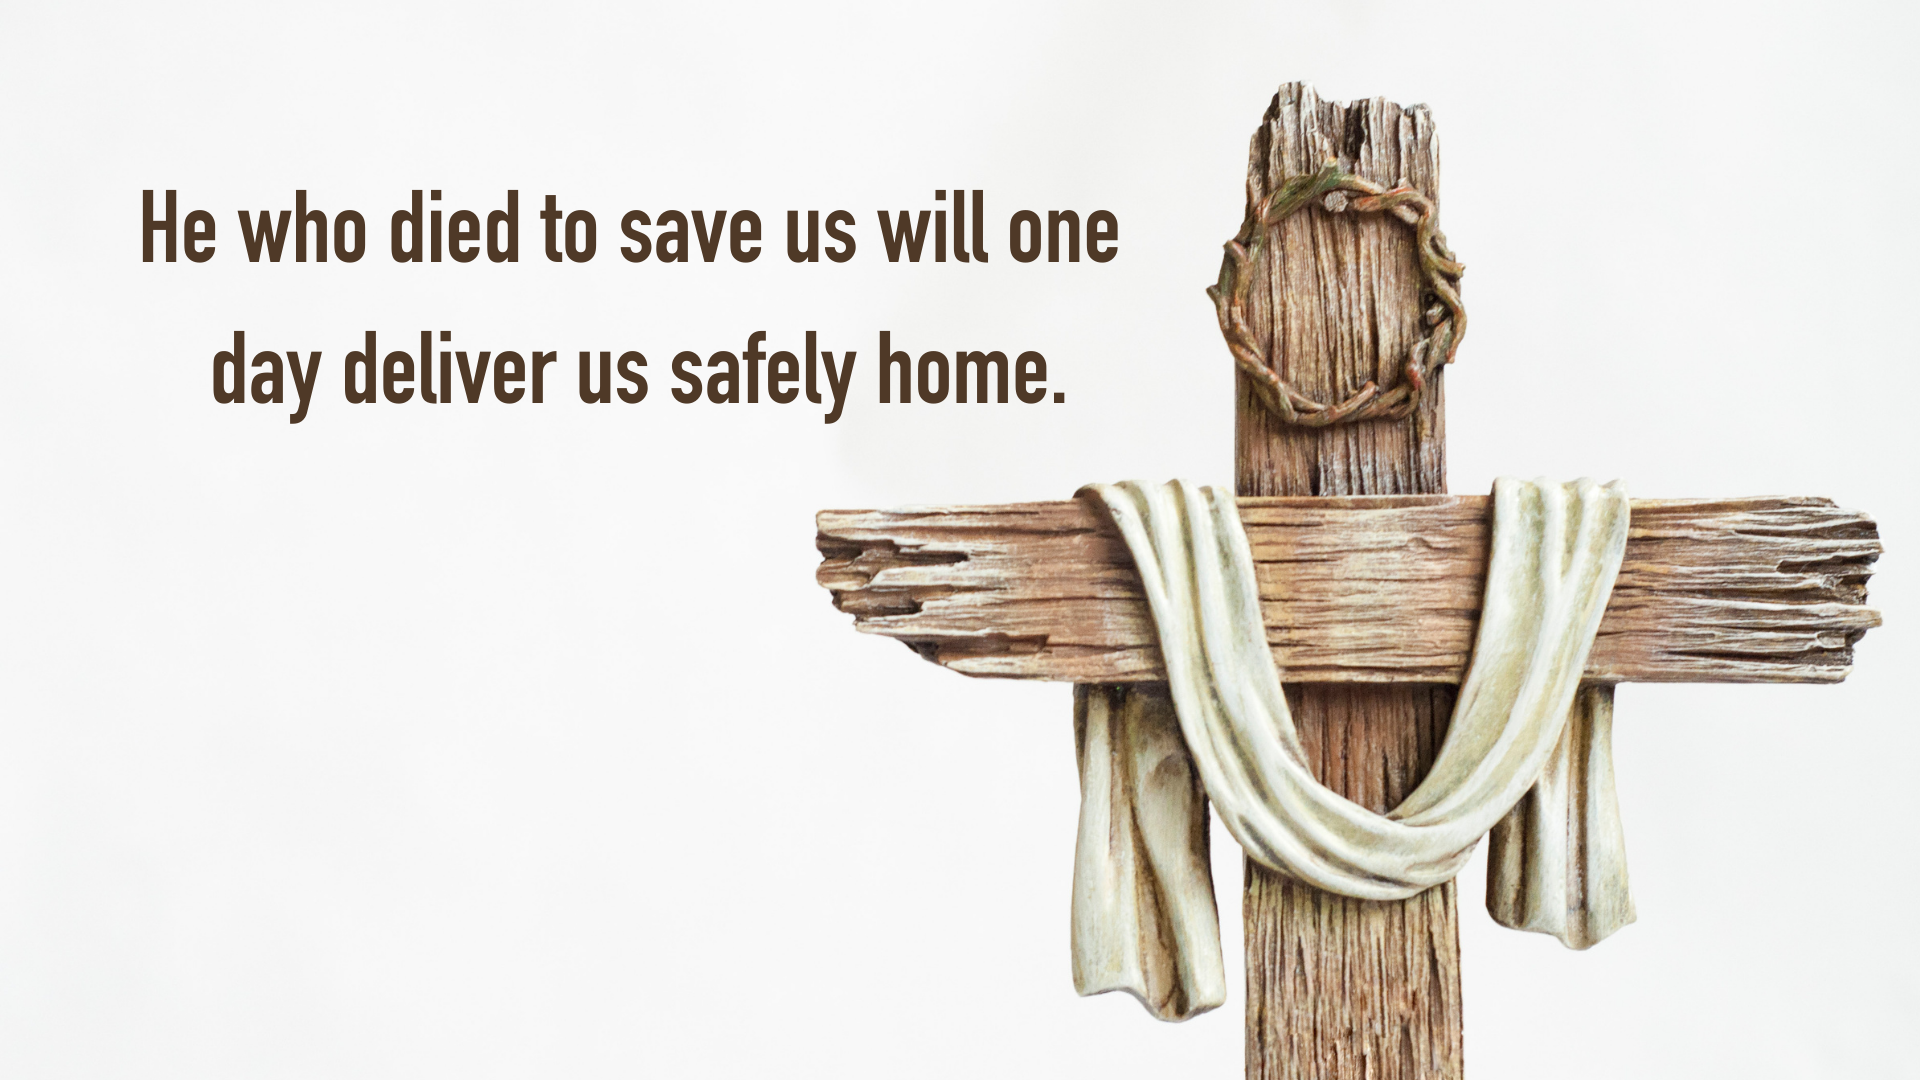 He who saved us will also deliver us.